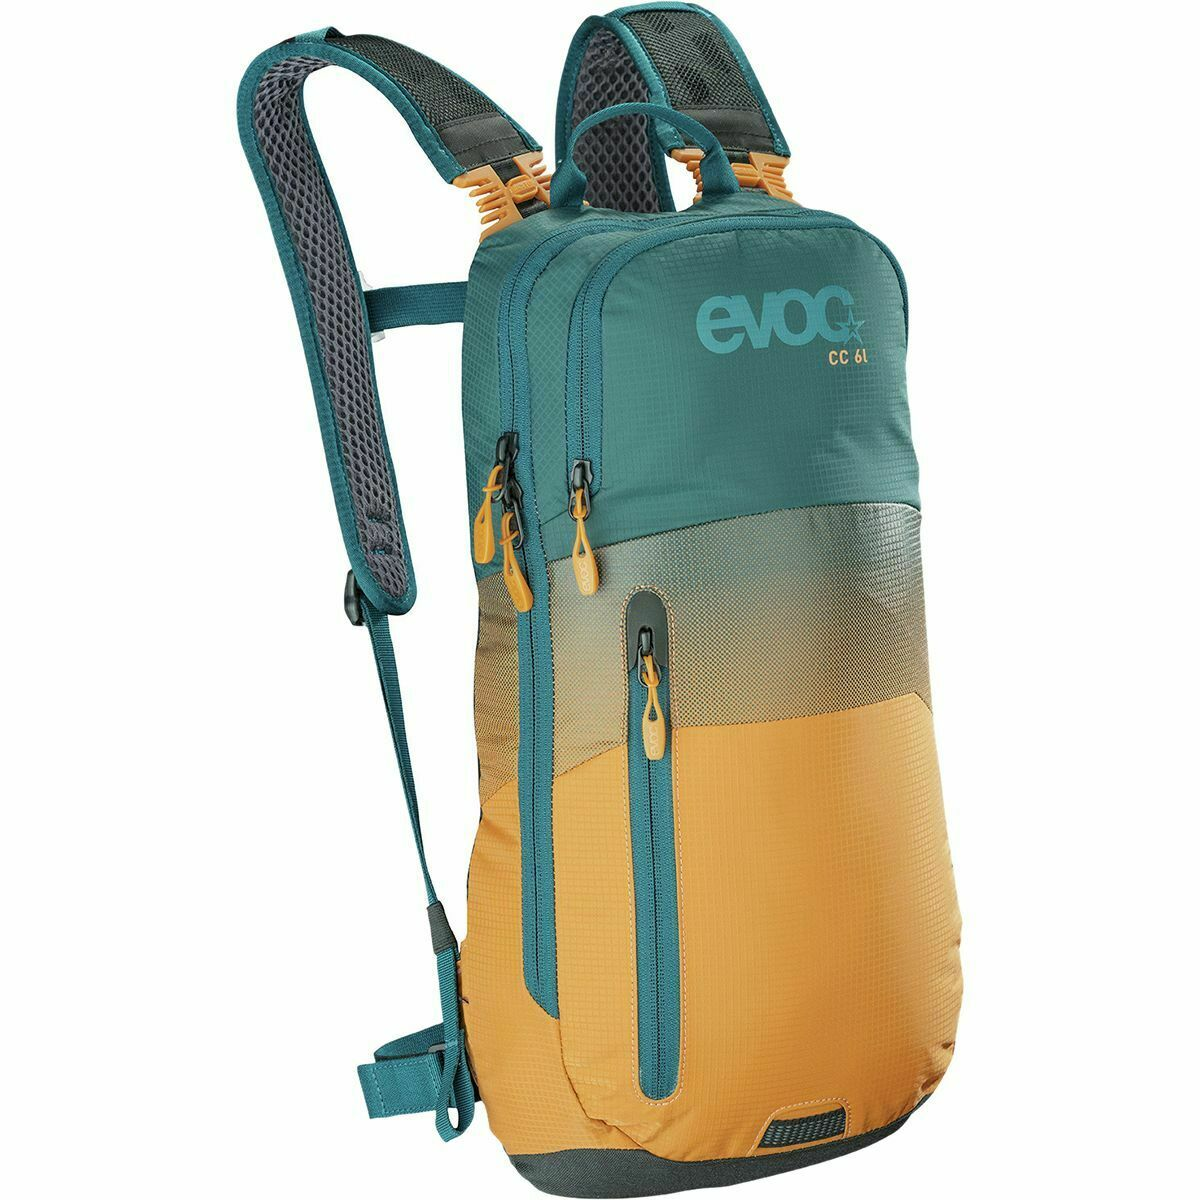 EVOC CC 6 + 2L Bladder Hydration Bag 6L Petrol Loam